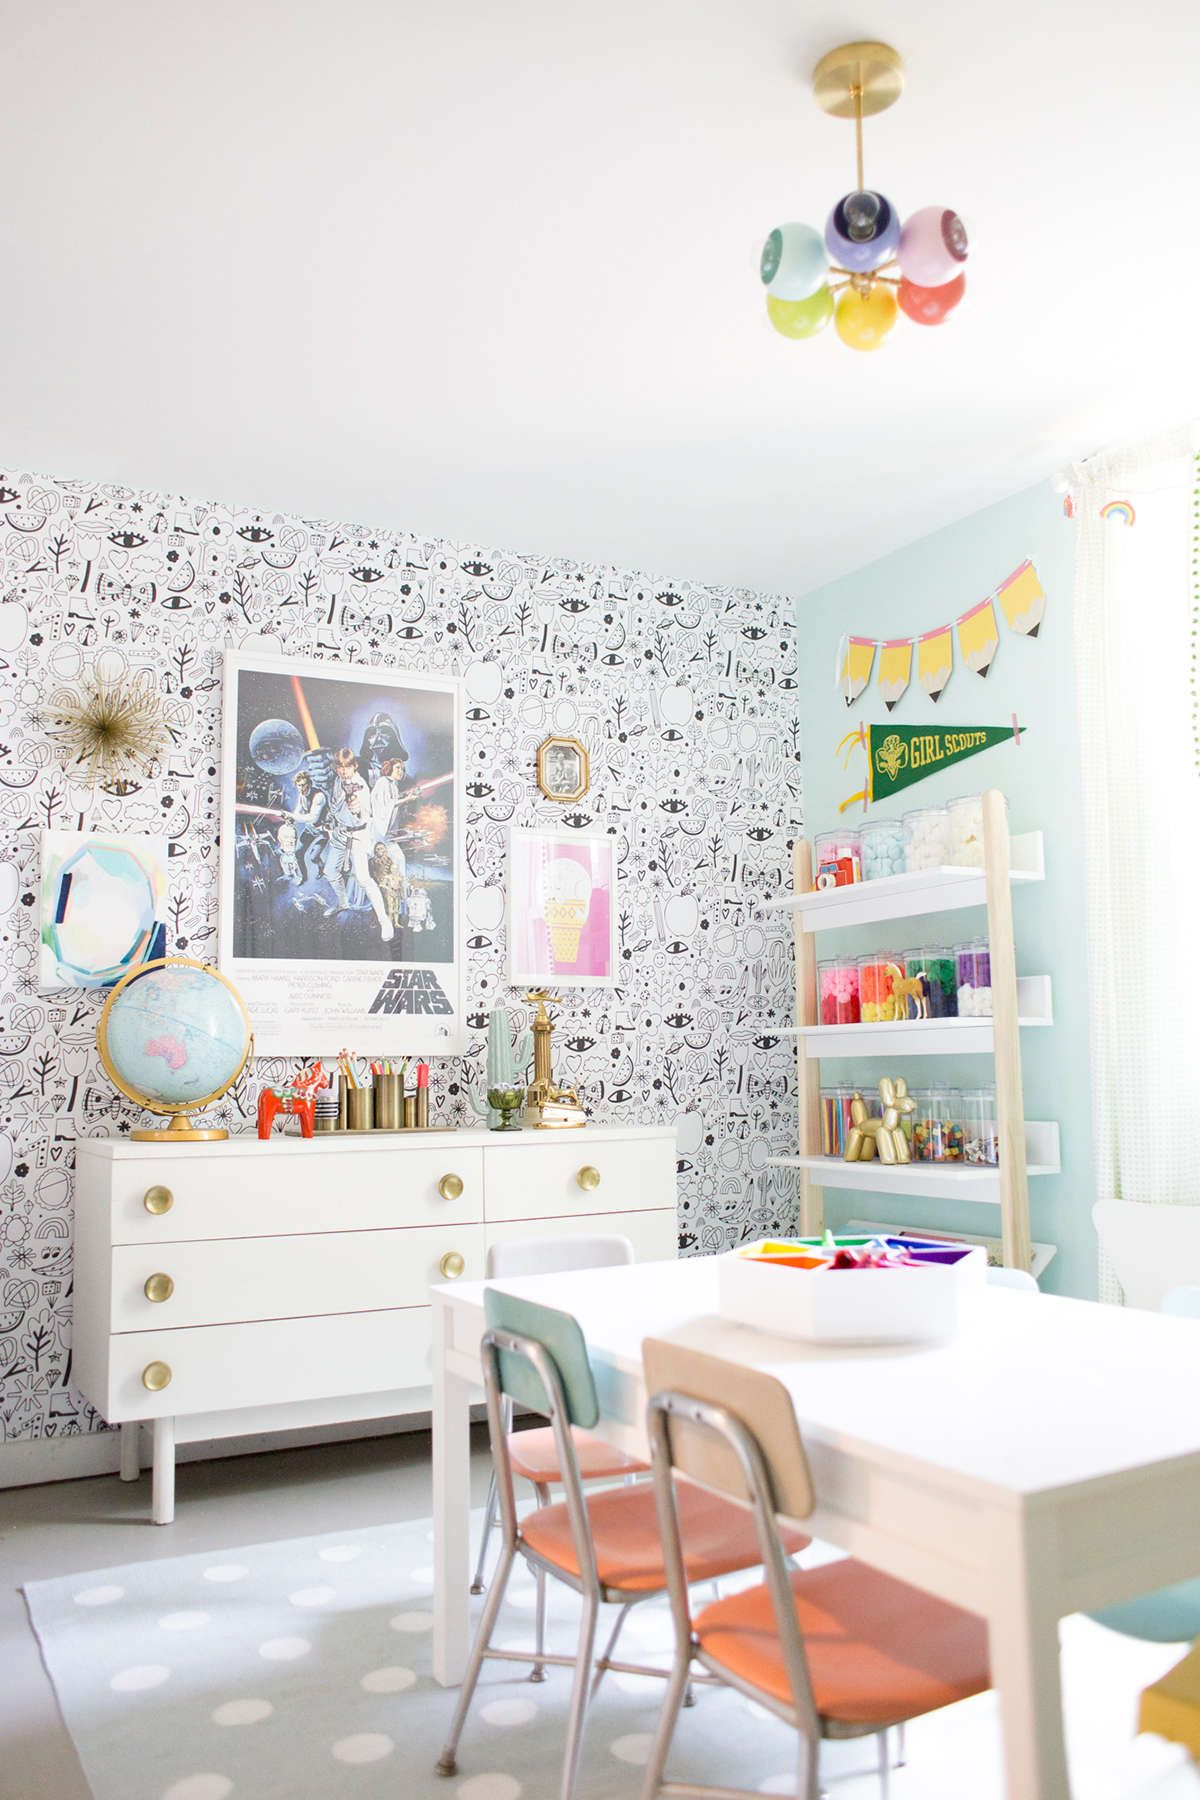 Ideas For Kids Room Craft Room Ideas For Kids In 2019 Home Design Playroom